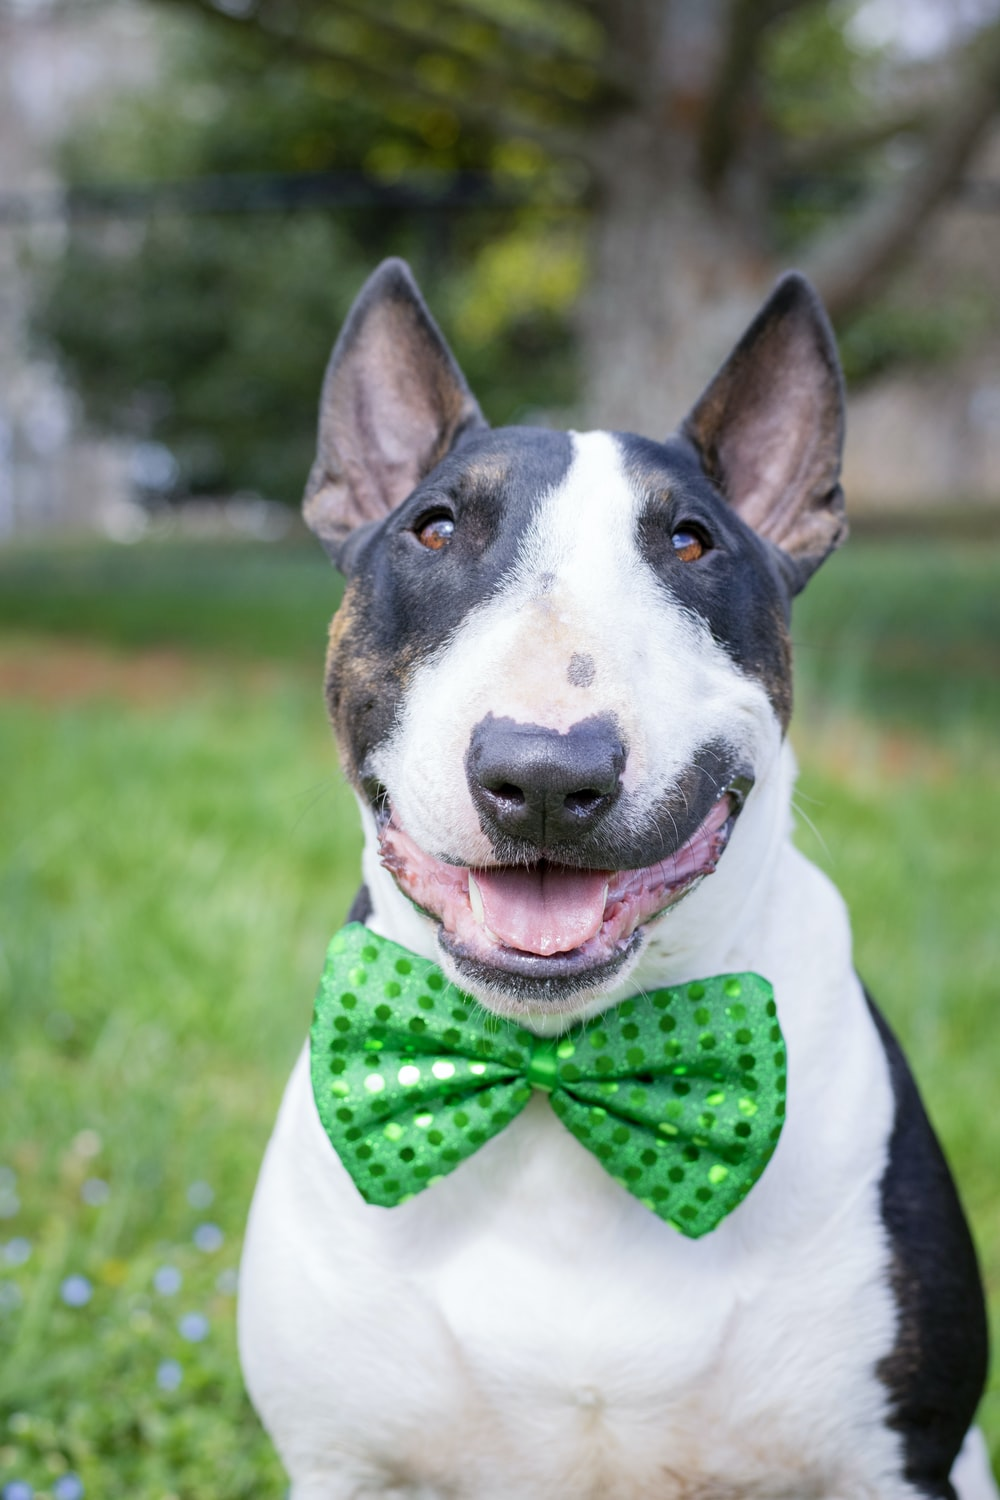 white and black short coated dog with red bowtie on green grass field during daytime